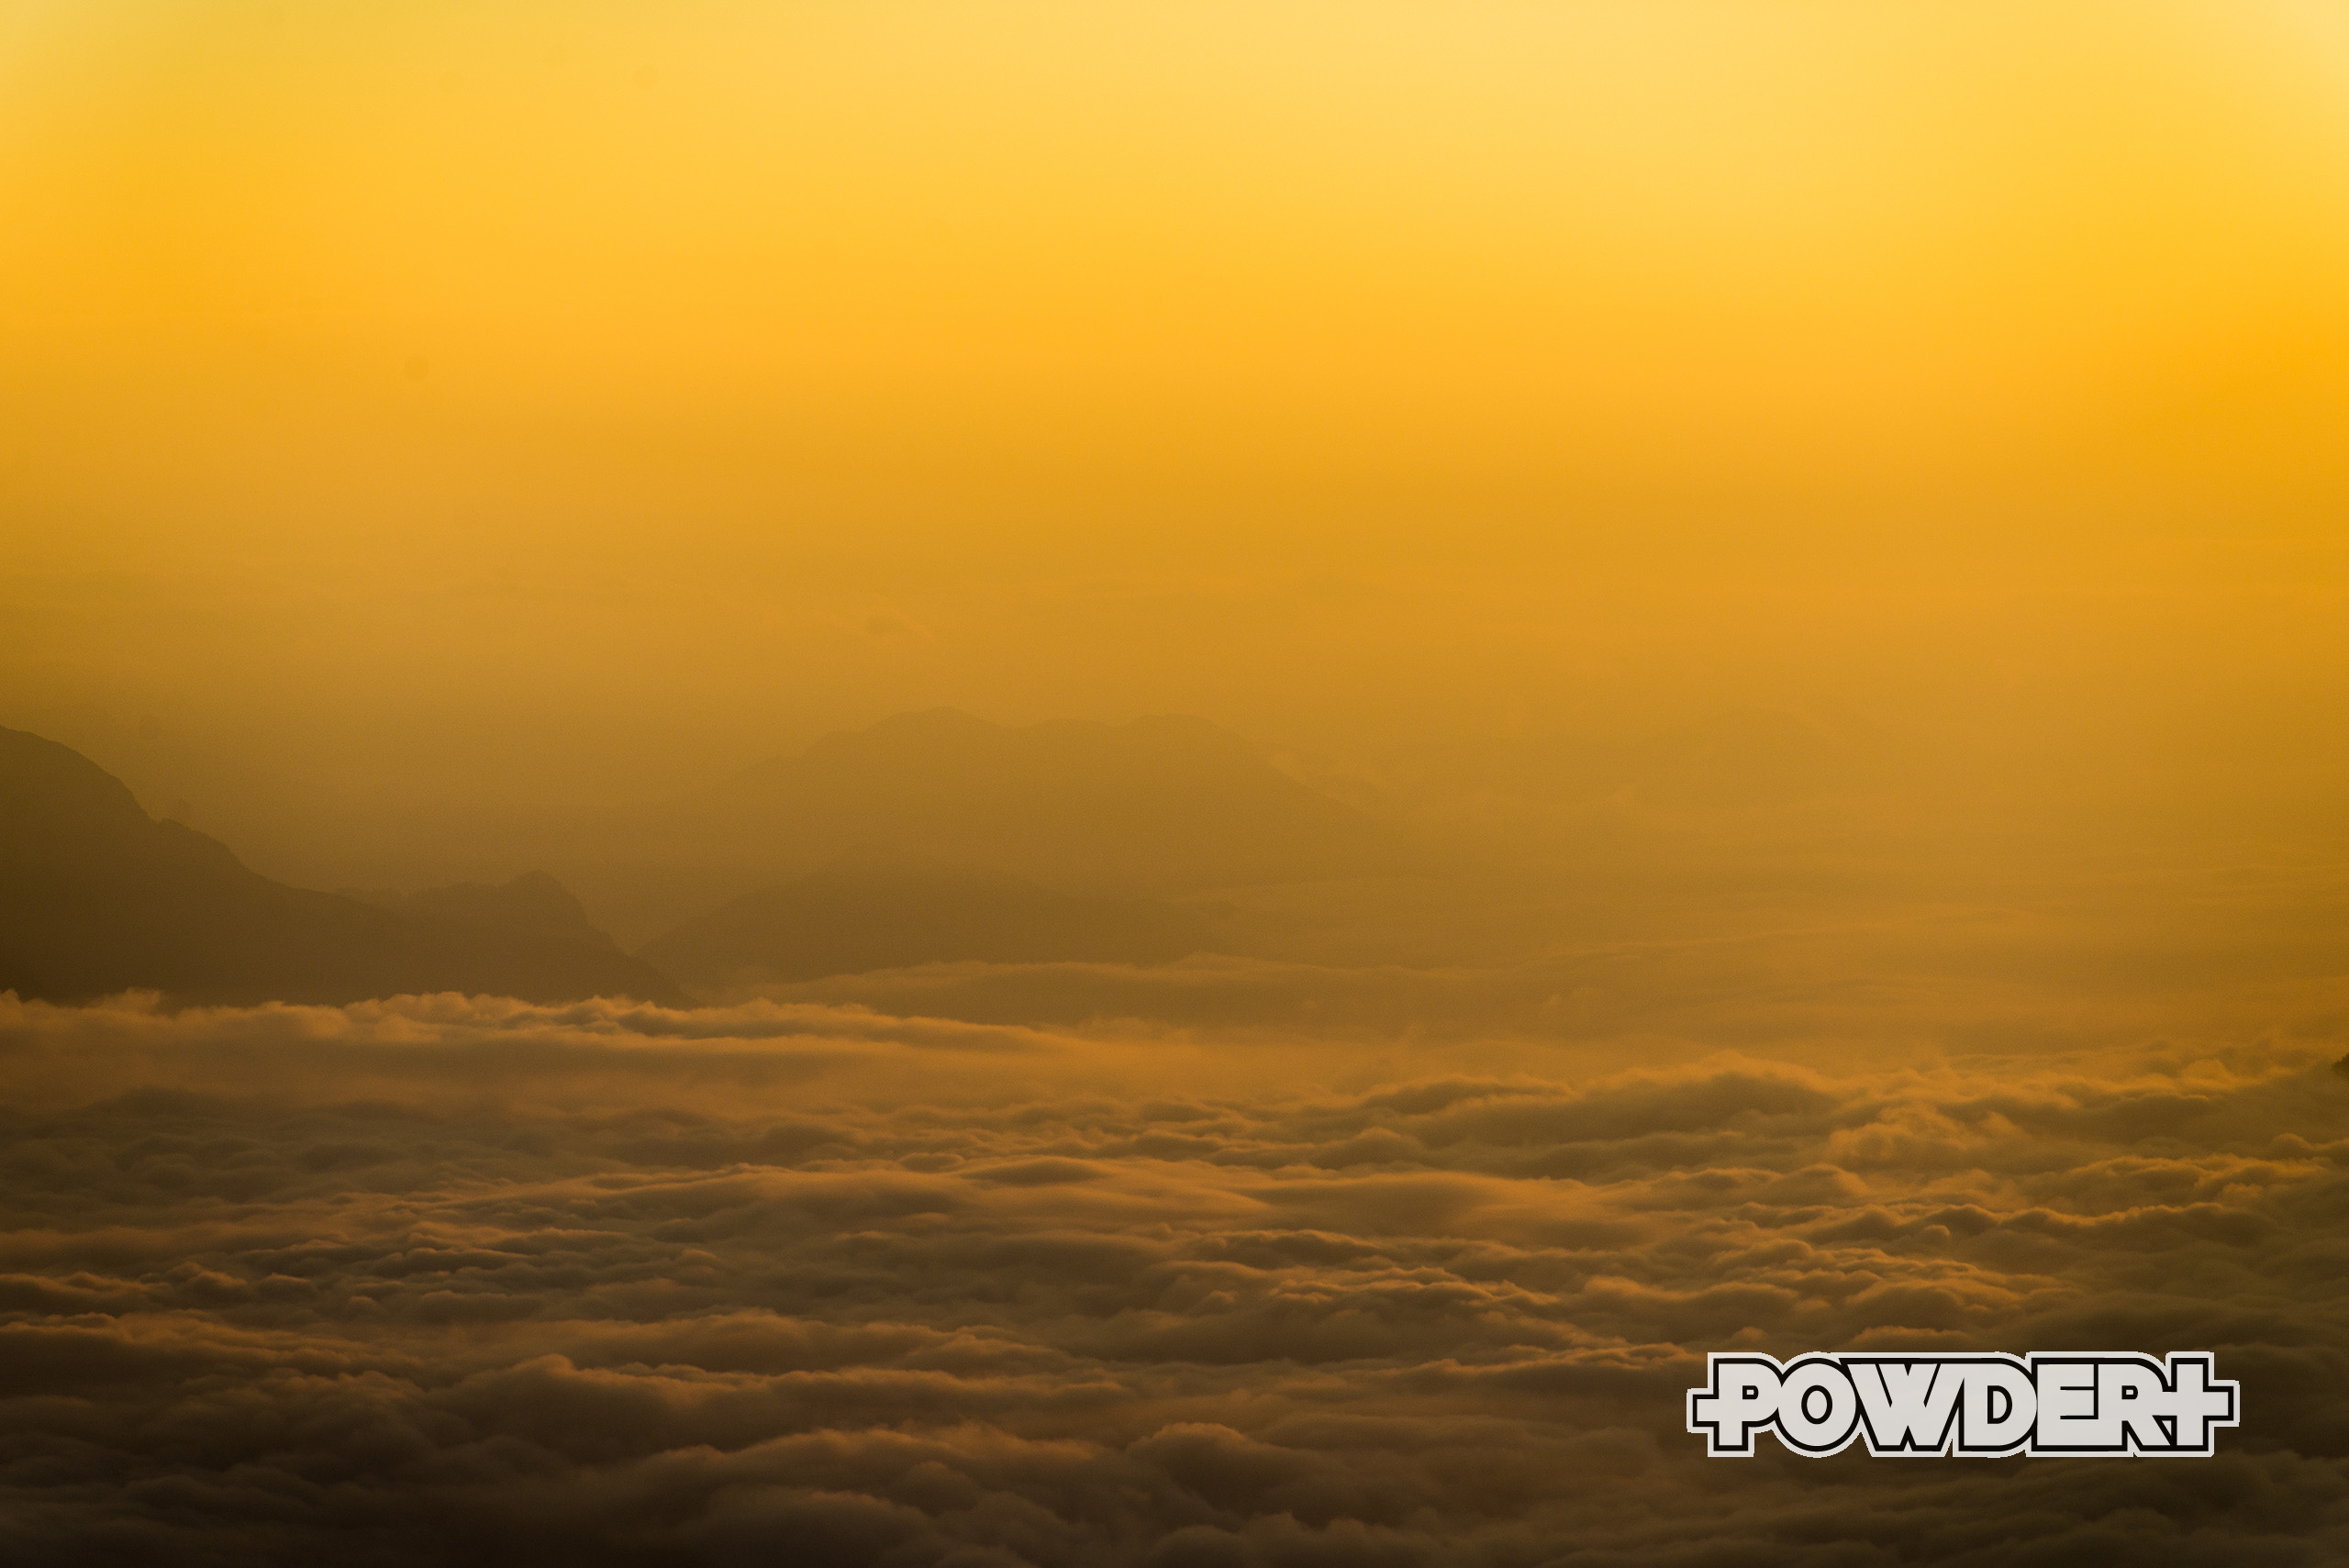 powderplus, wallpaper, aussicht, inntal, Nebelmeer, fog, sunrise, Sonnenaufgang